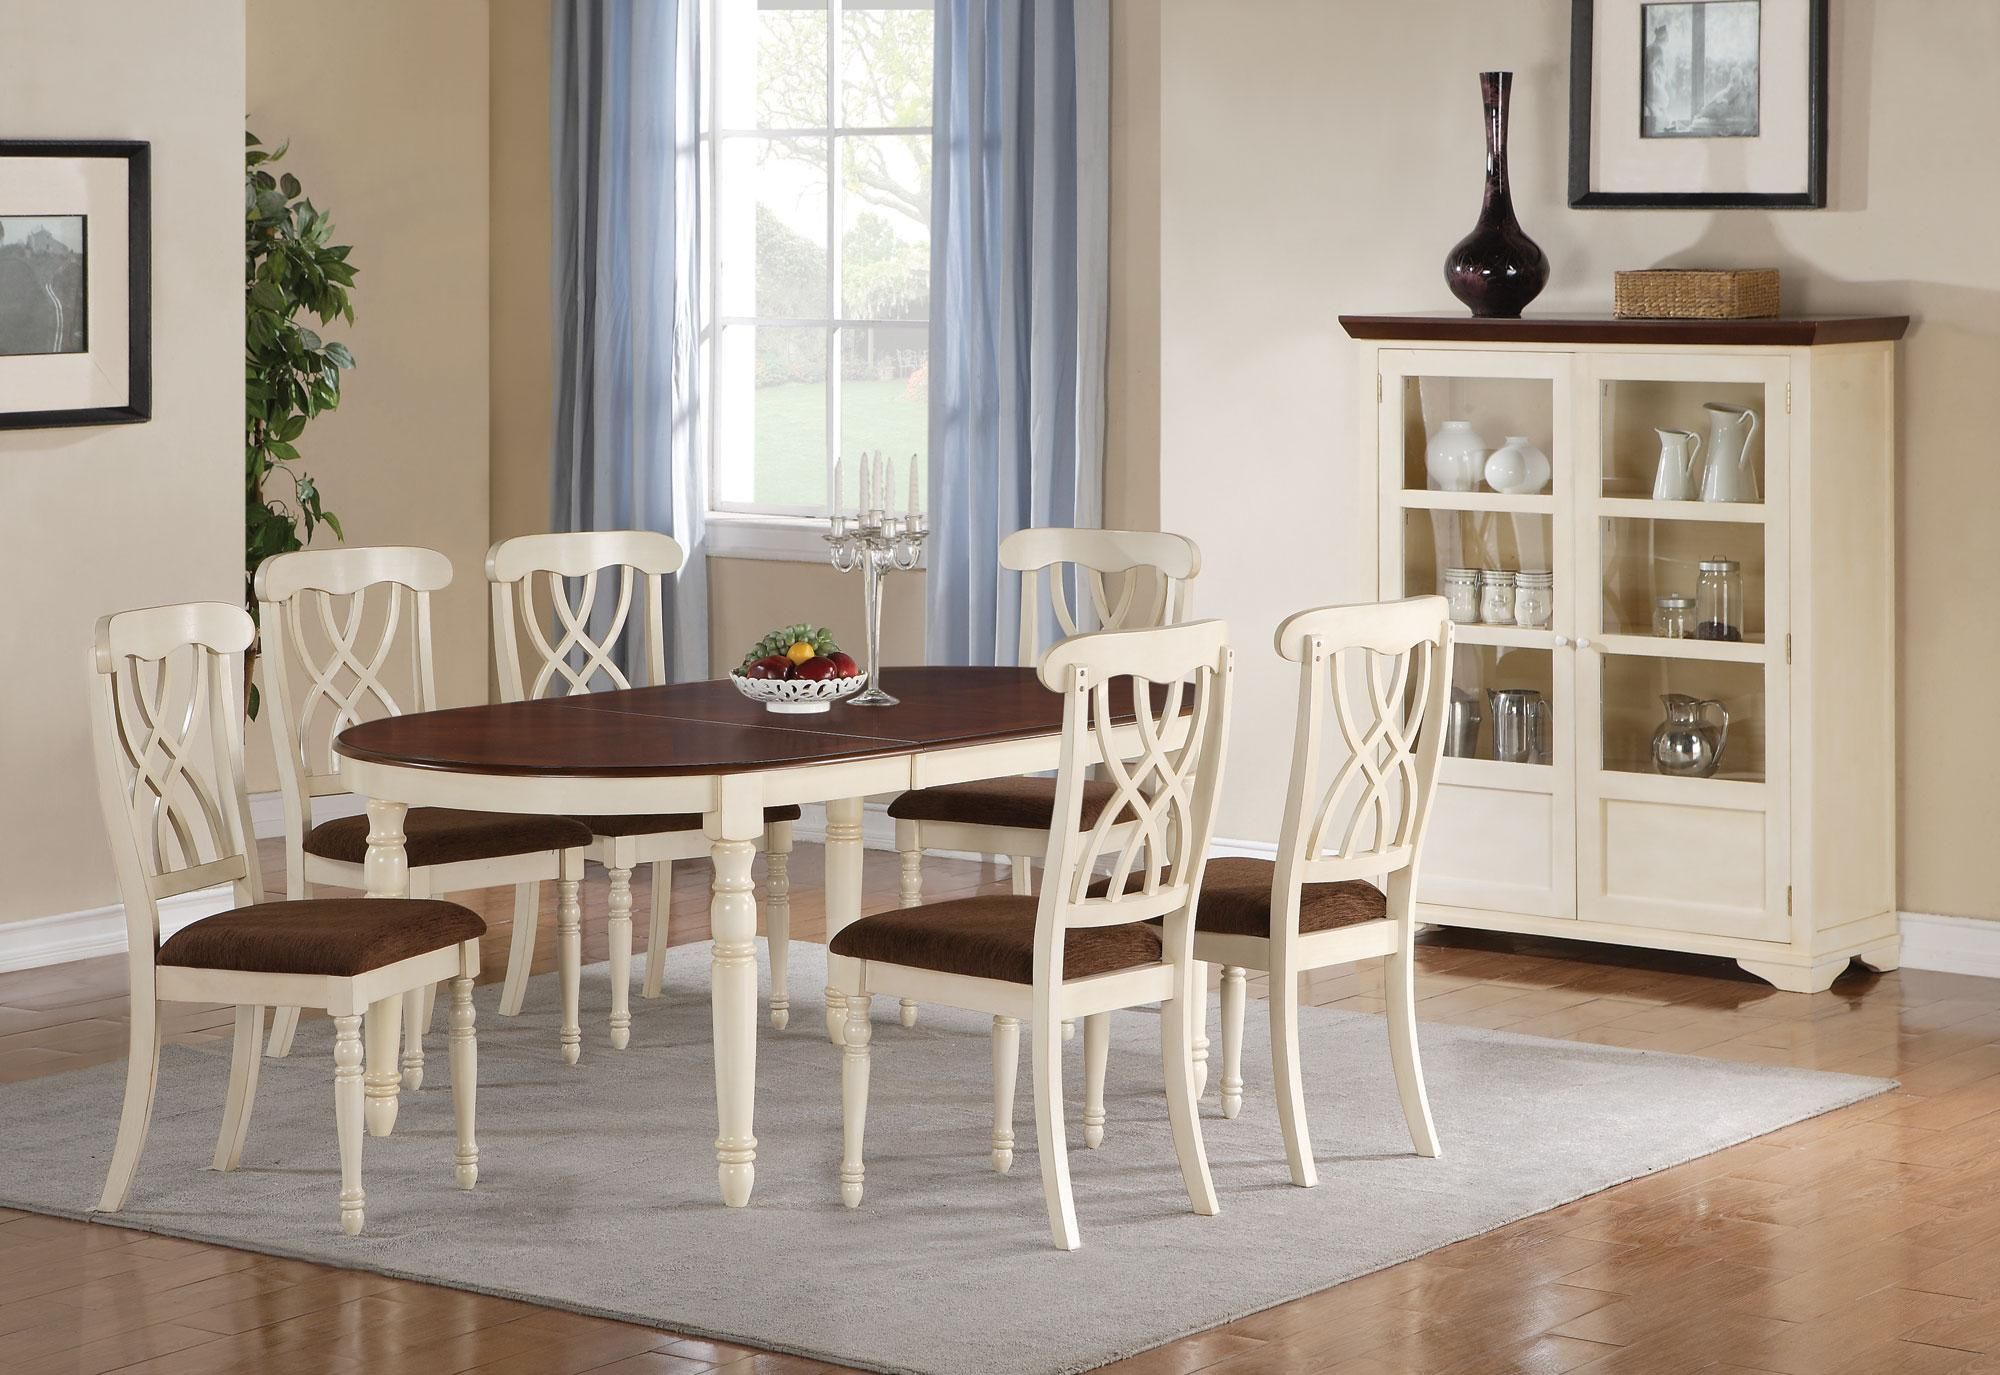 room sets luxury dining furniture set cottage rugs blue french country table style cottages area